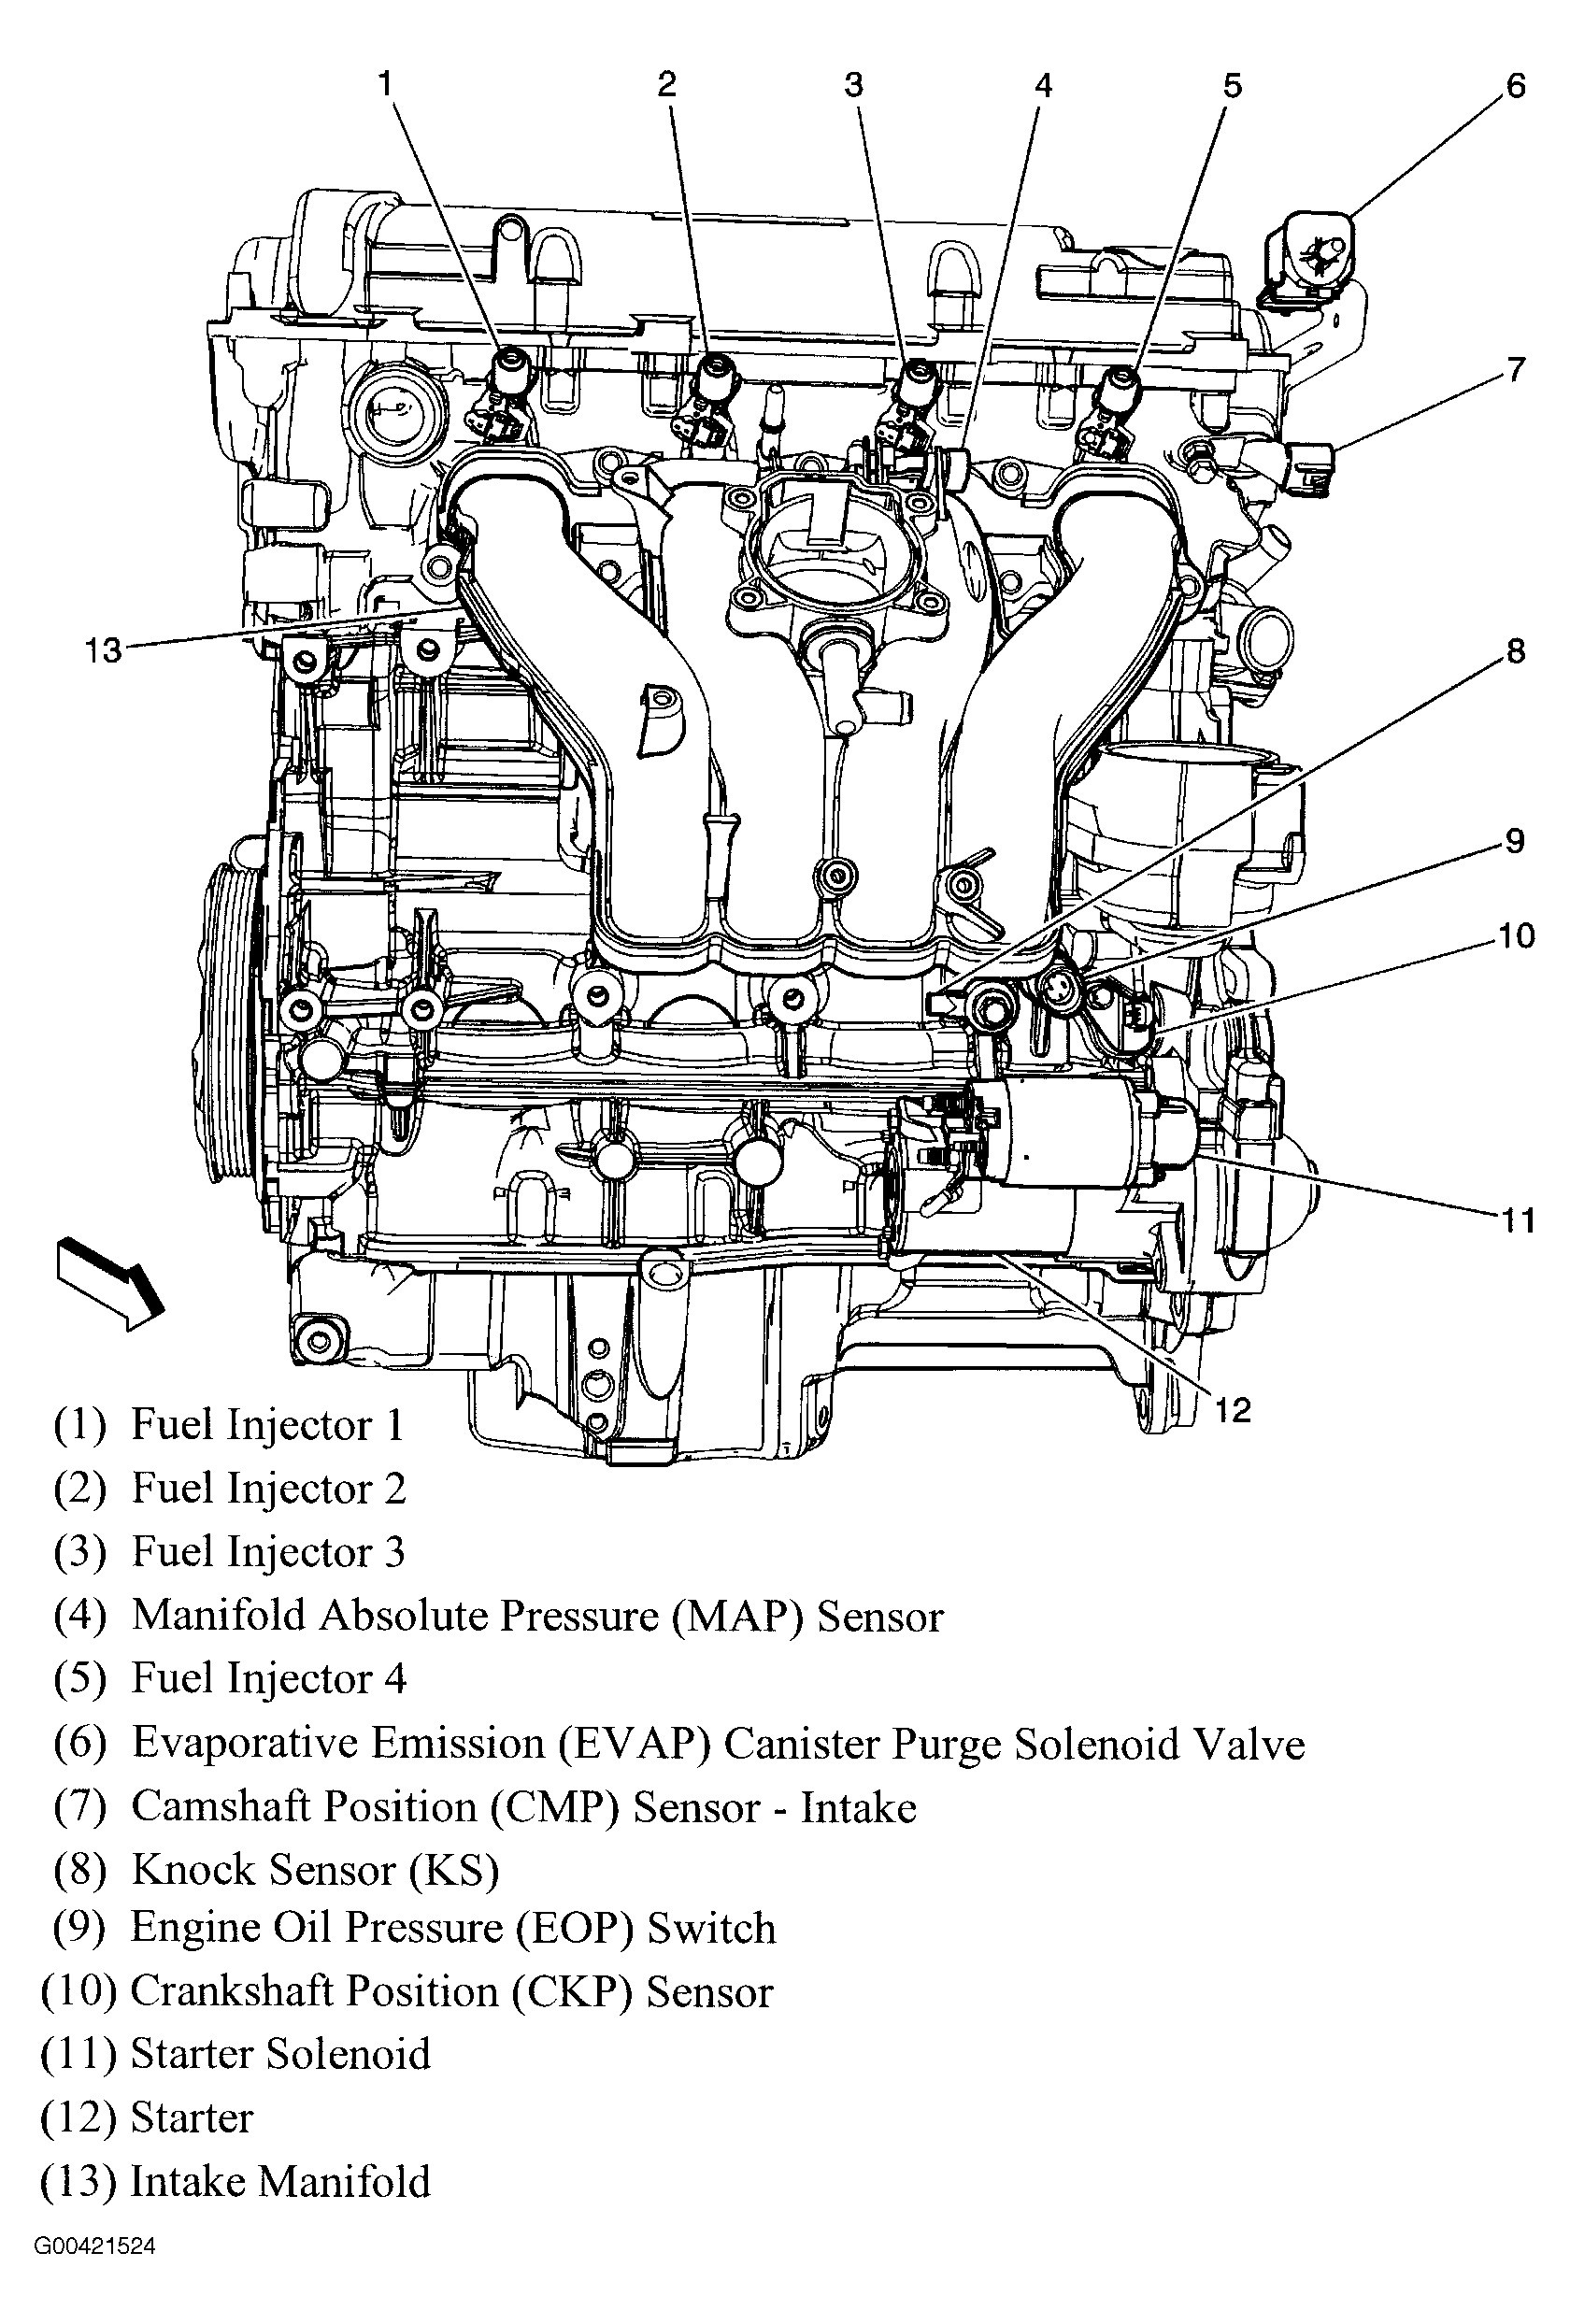 97 Chevy Malibu Engine Diagram